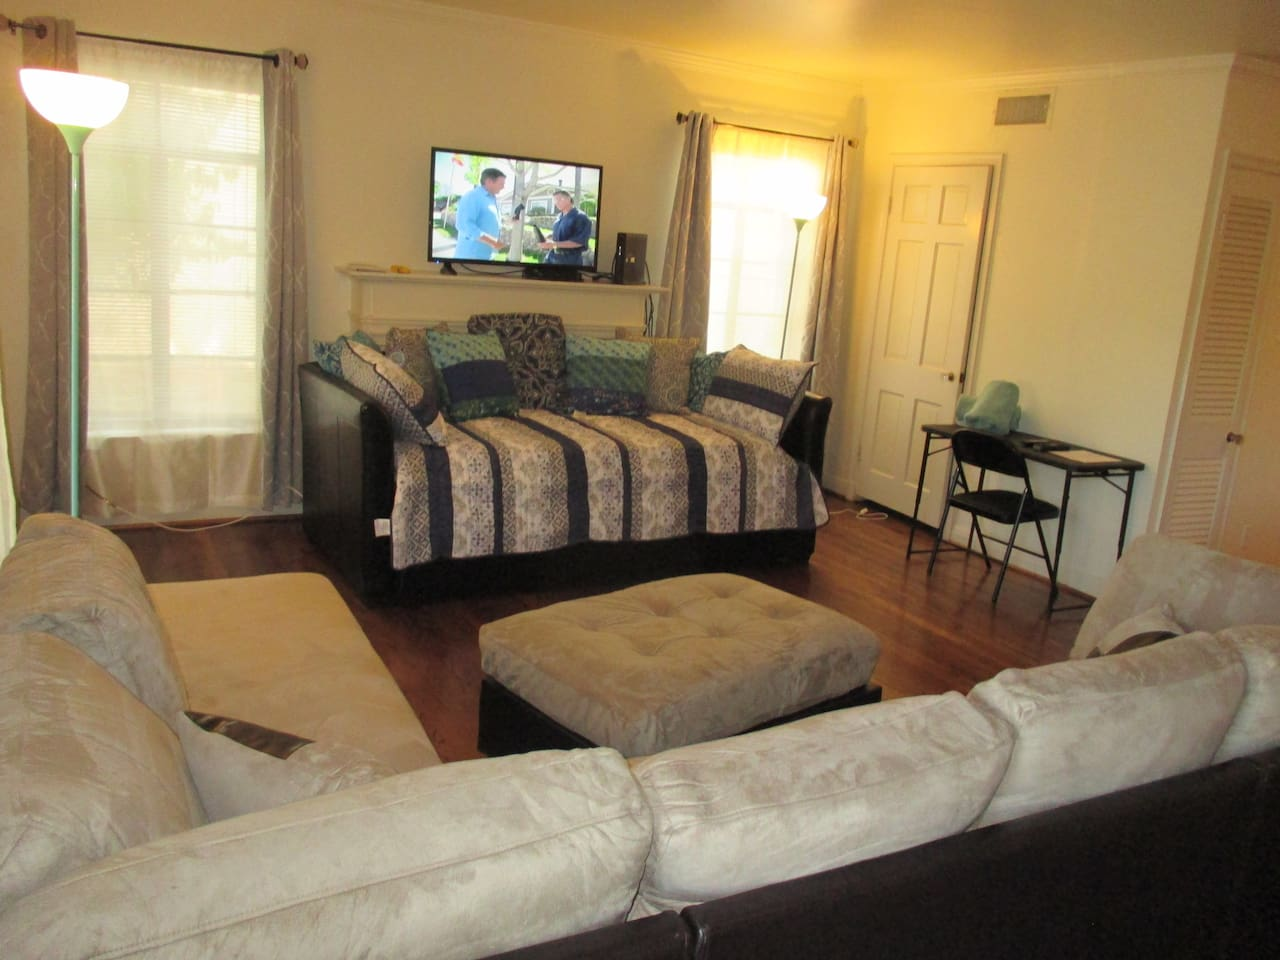 Living room with sofa sectional and daybed which has 2 twin size mattresses, accommodating 2 people.